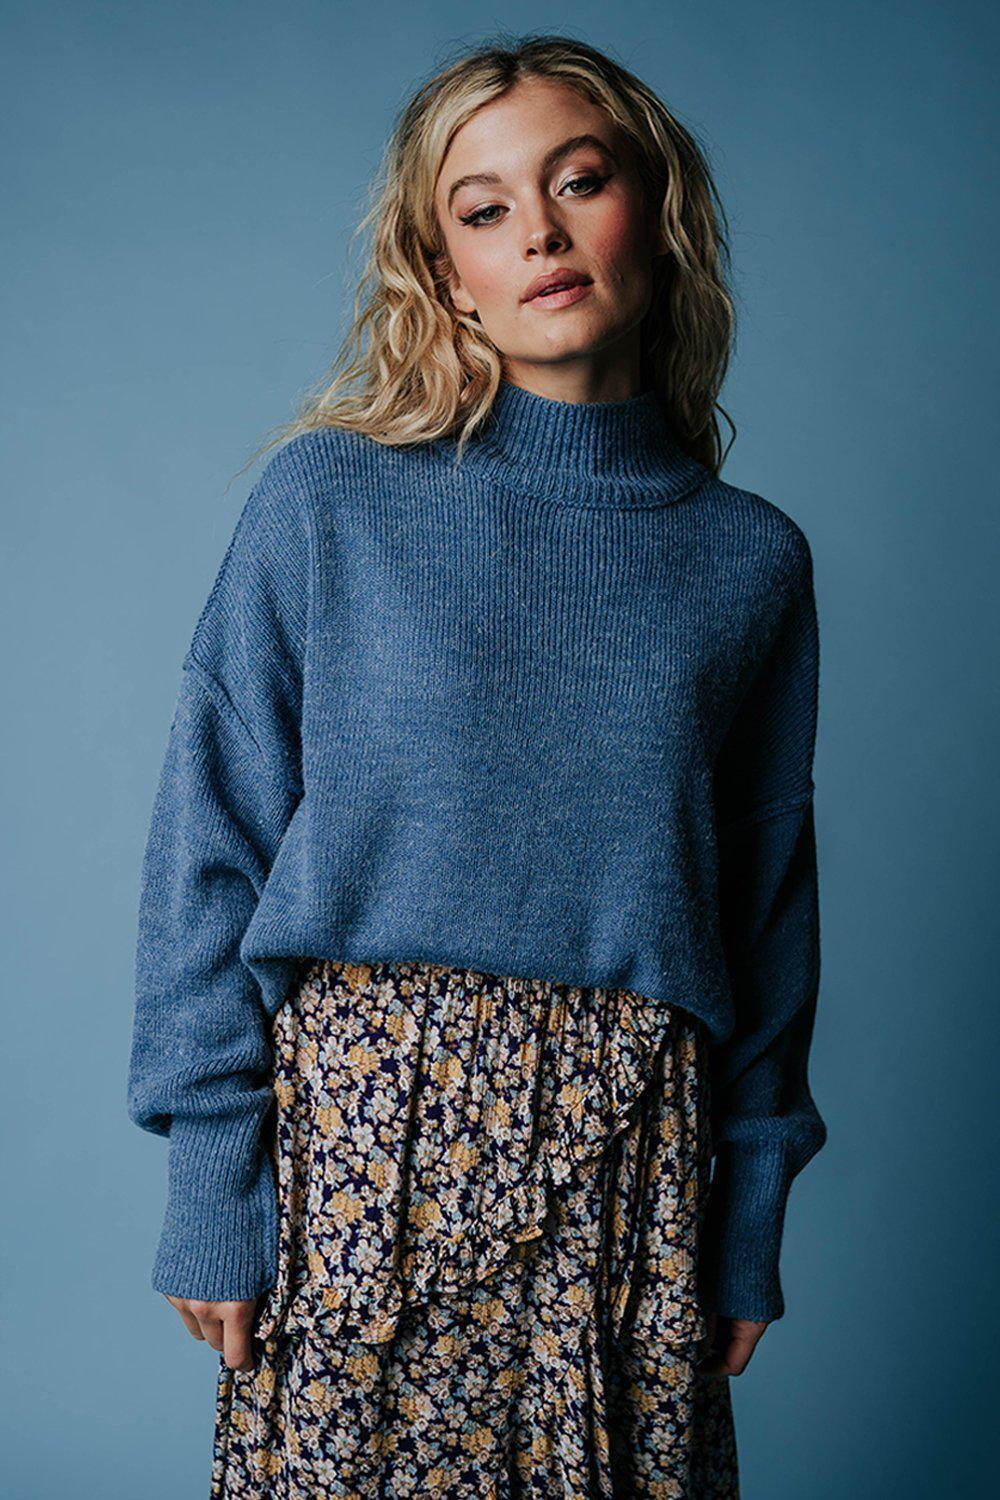 best_seller, One Man Show Pullover in Cornflower, Top, women's clothing, dresses, skirts, coats, jackets, shoes, boots, tops, tee shirts, jeans, free people, levi's, rollas, jumpsuits, bottoms, tops, sweaters, pullovers, pants, shorts, sweats,.